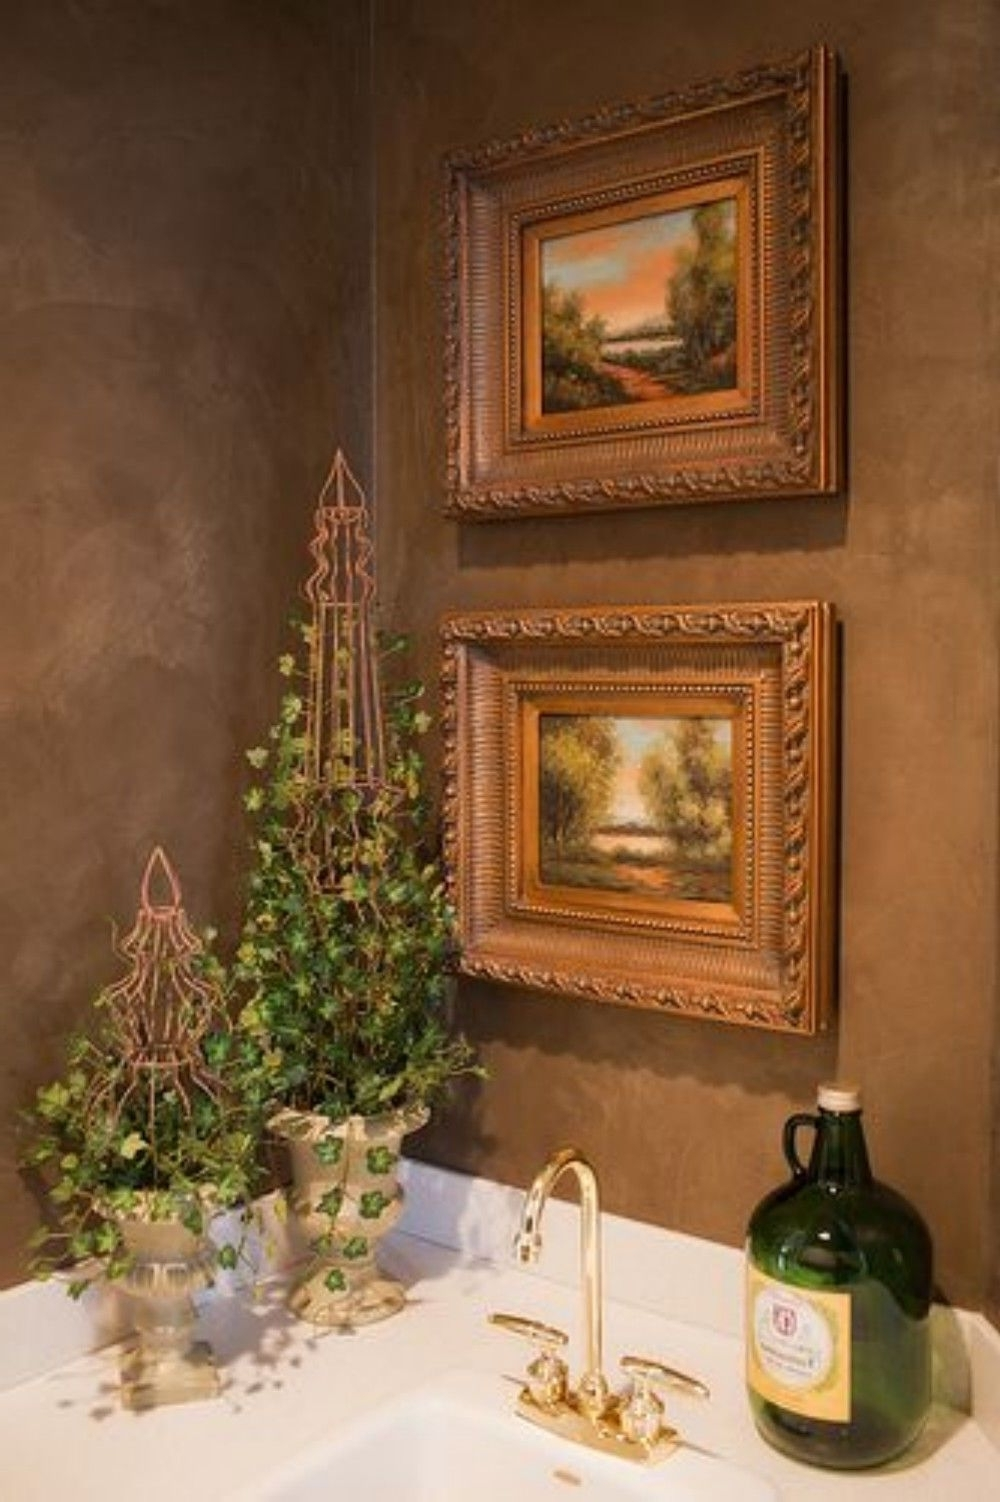 Italian Wall Art For Bathroom Intended For Most Up To Date Nice 82 Luxurious Tuscan Bathroom Decor Ideas Https (View 9 of 15)